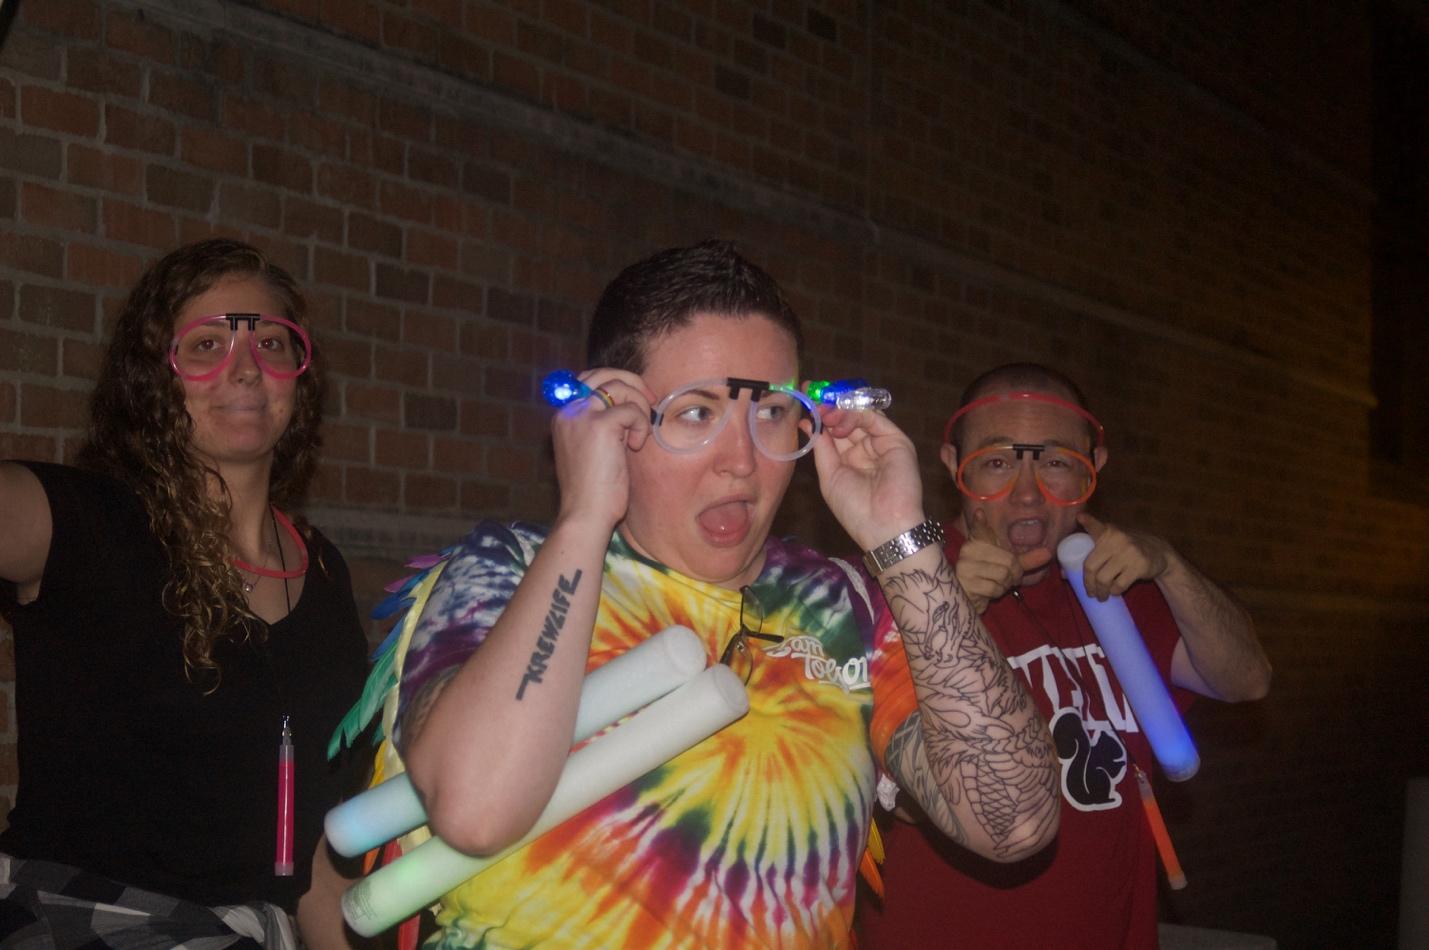 Volunteers pose with glow sticks and jewelry as That Gay 5K draws to a close.